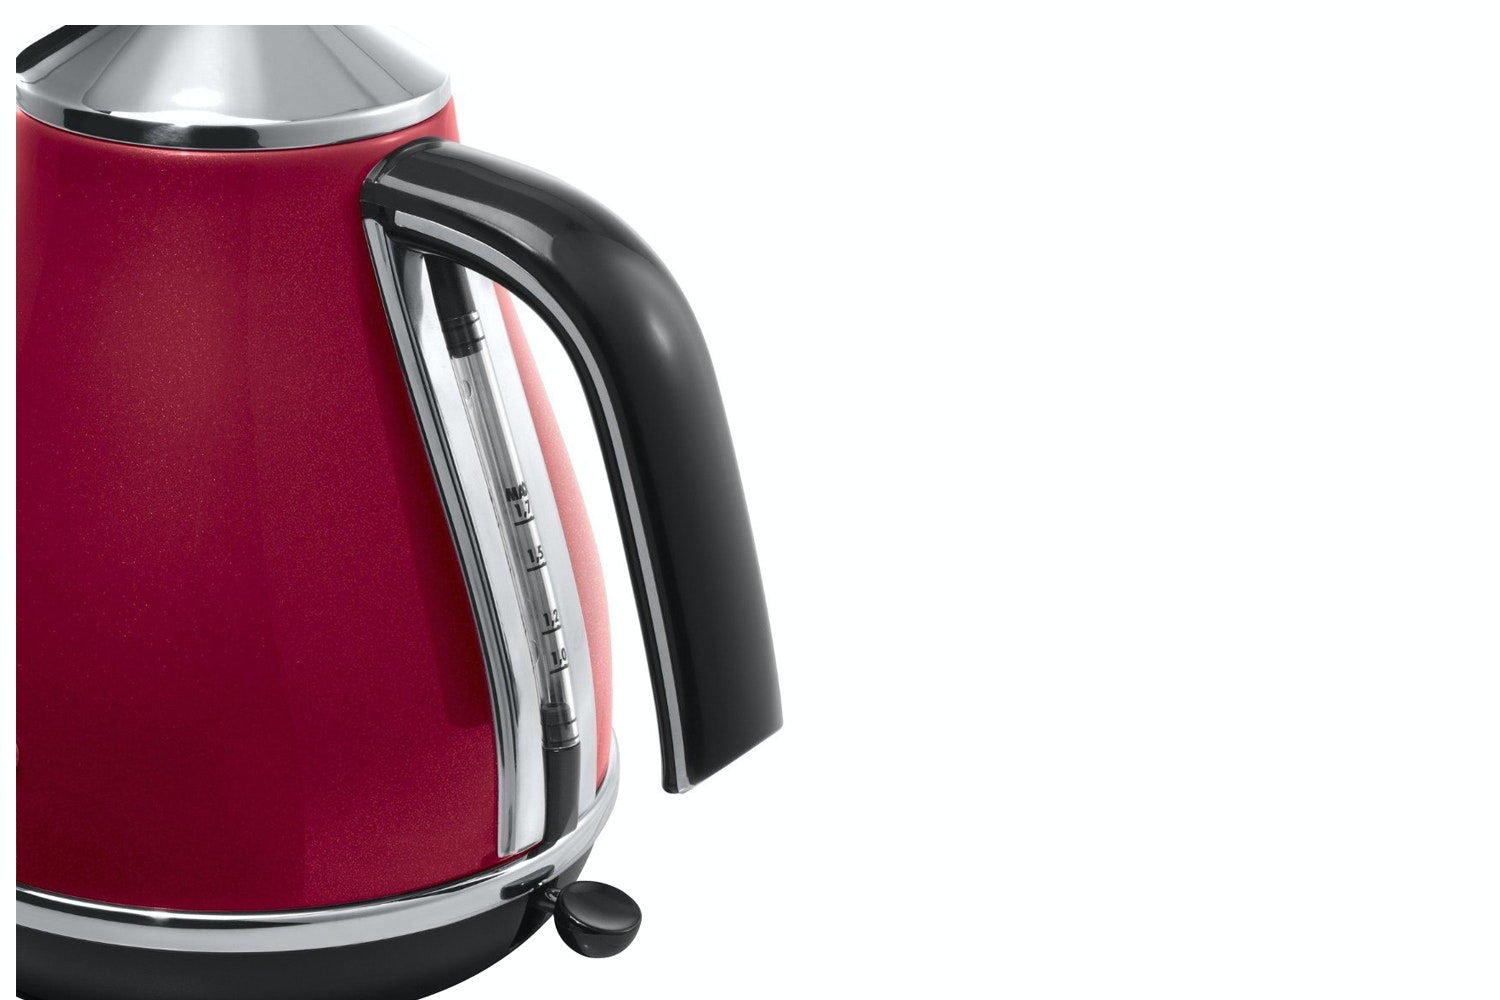 DeLonghi Micalite 1.7L Kettle | KBOM3001R | Red